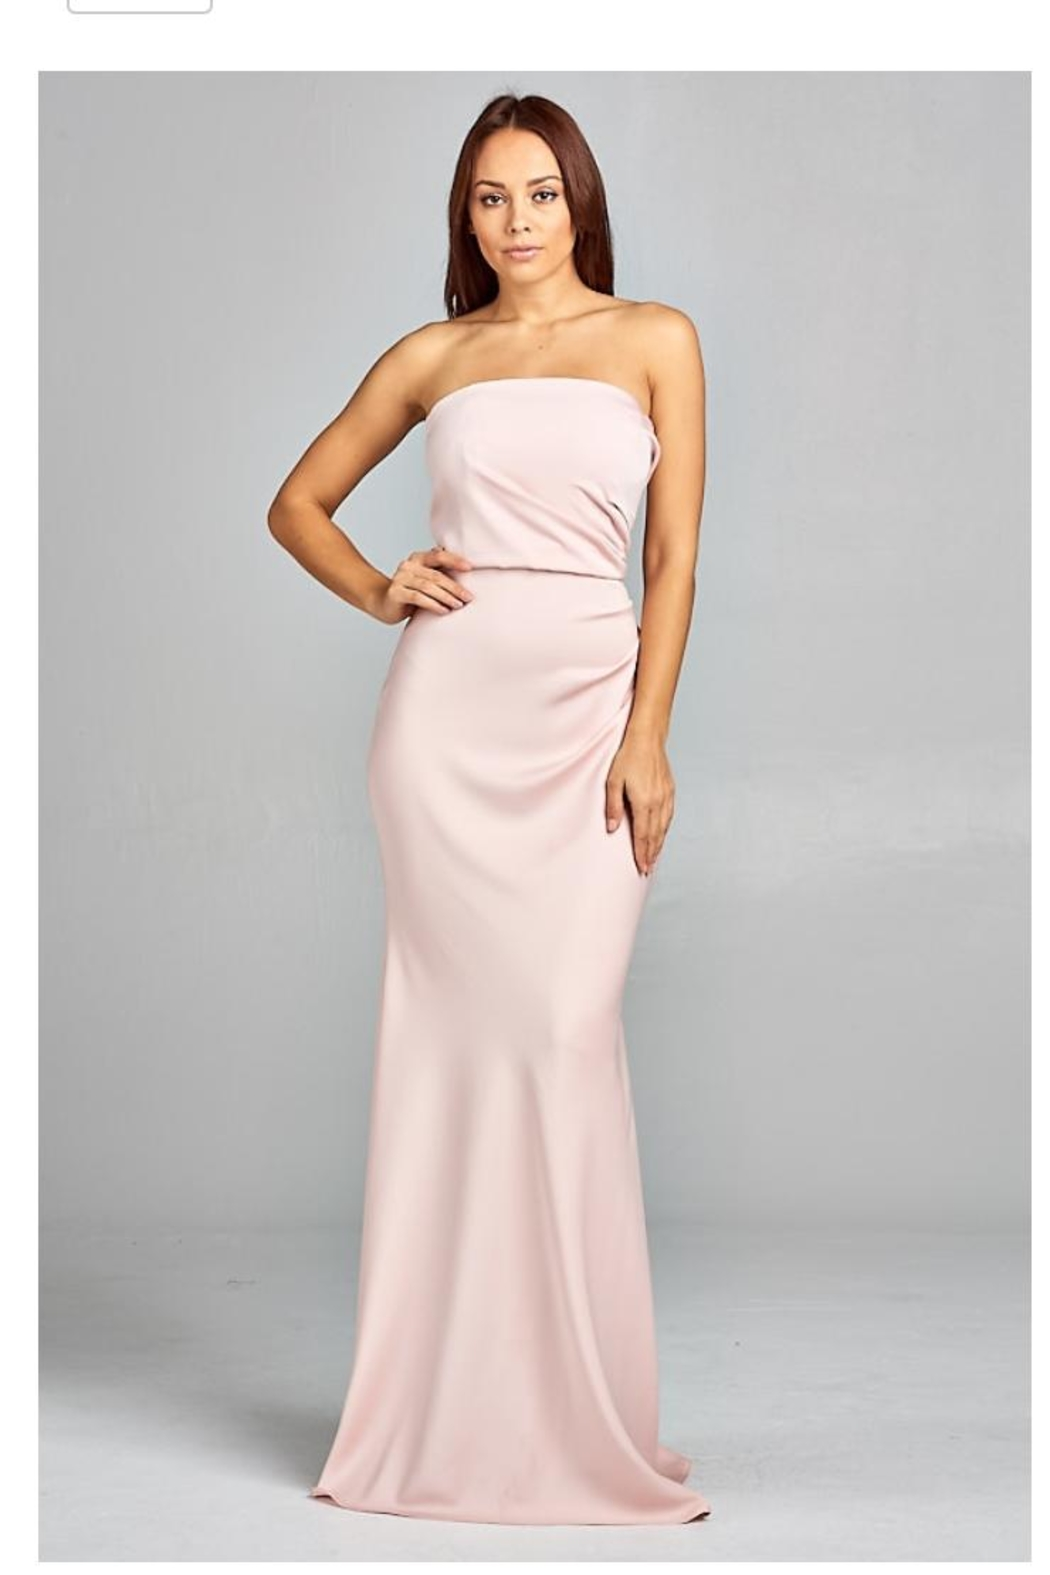 AG Studio Blush Strapless Gown - Main Image